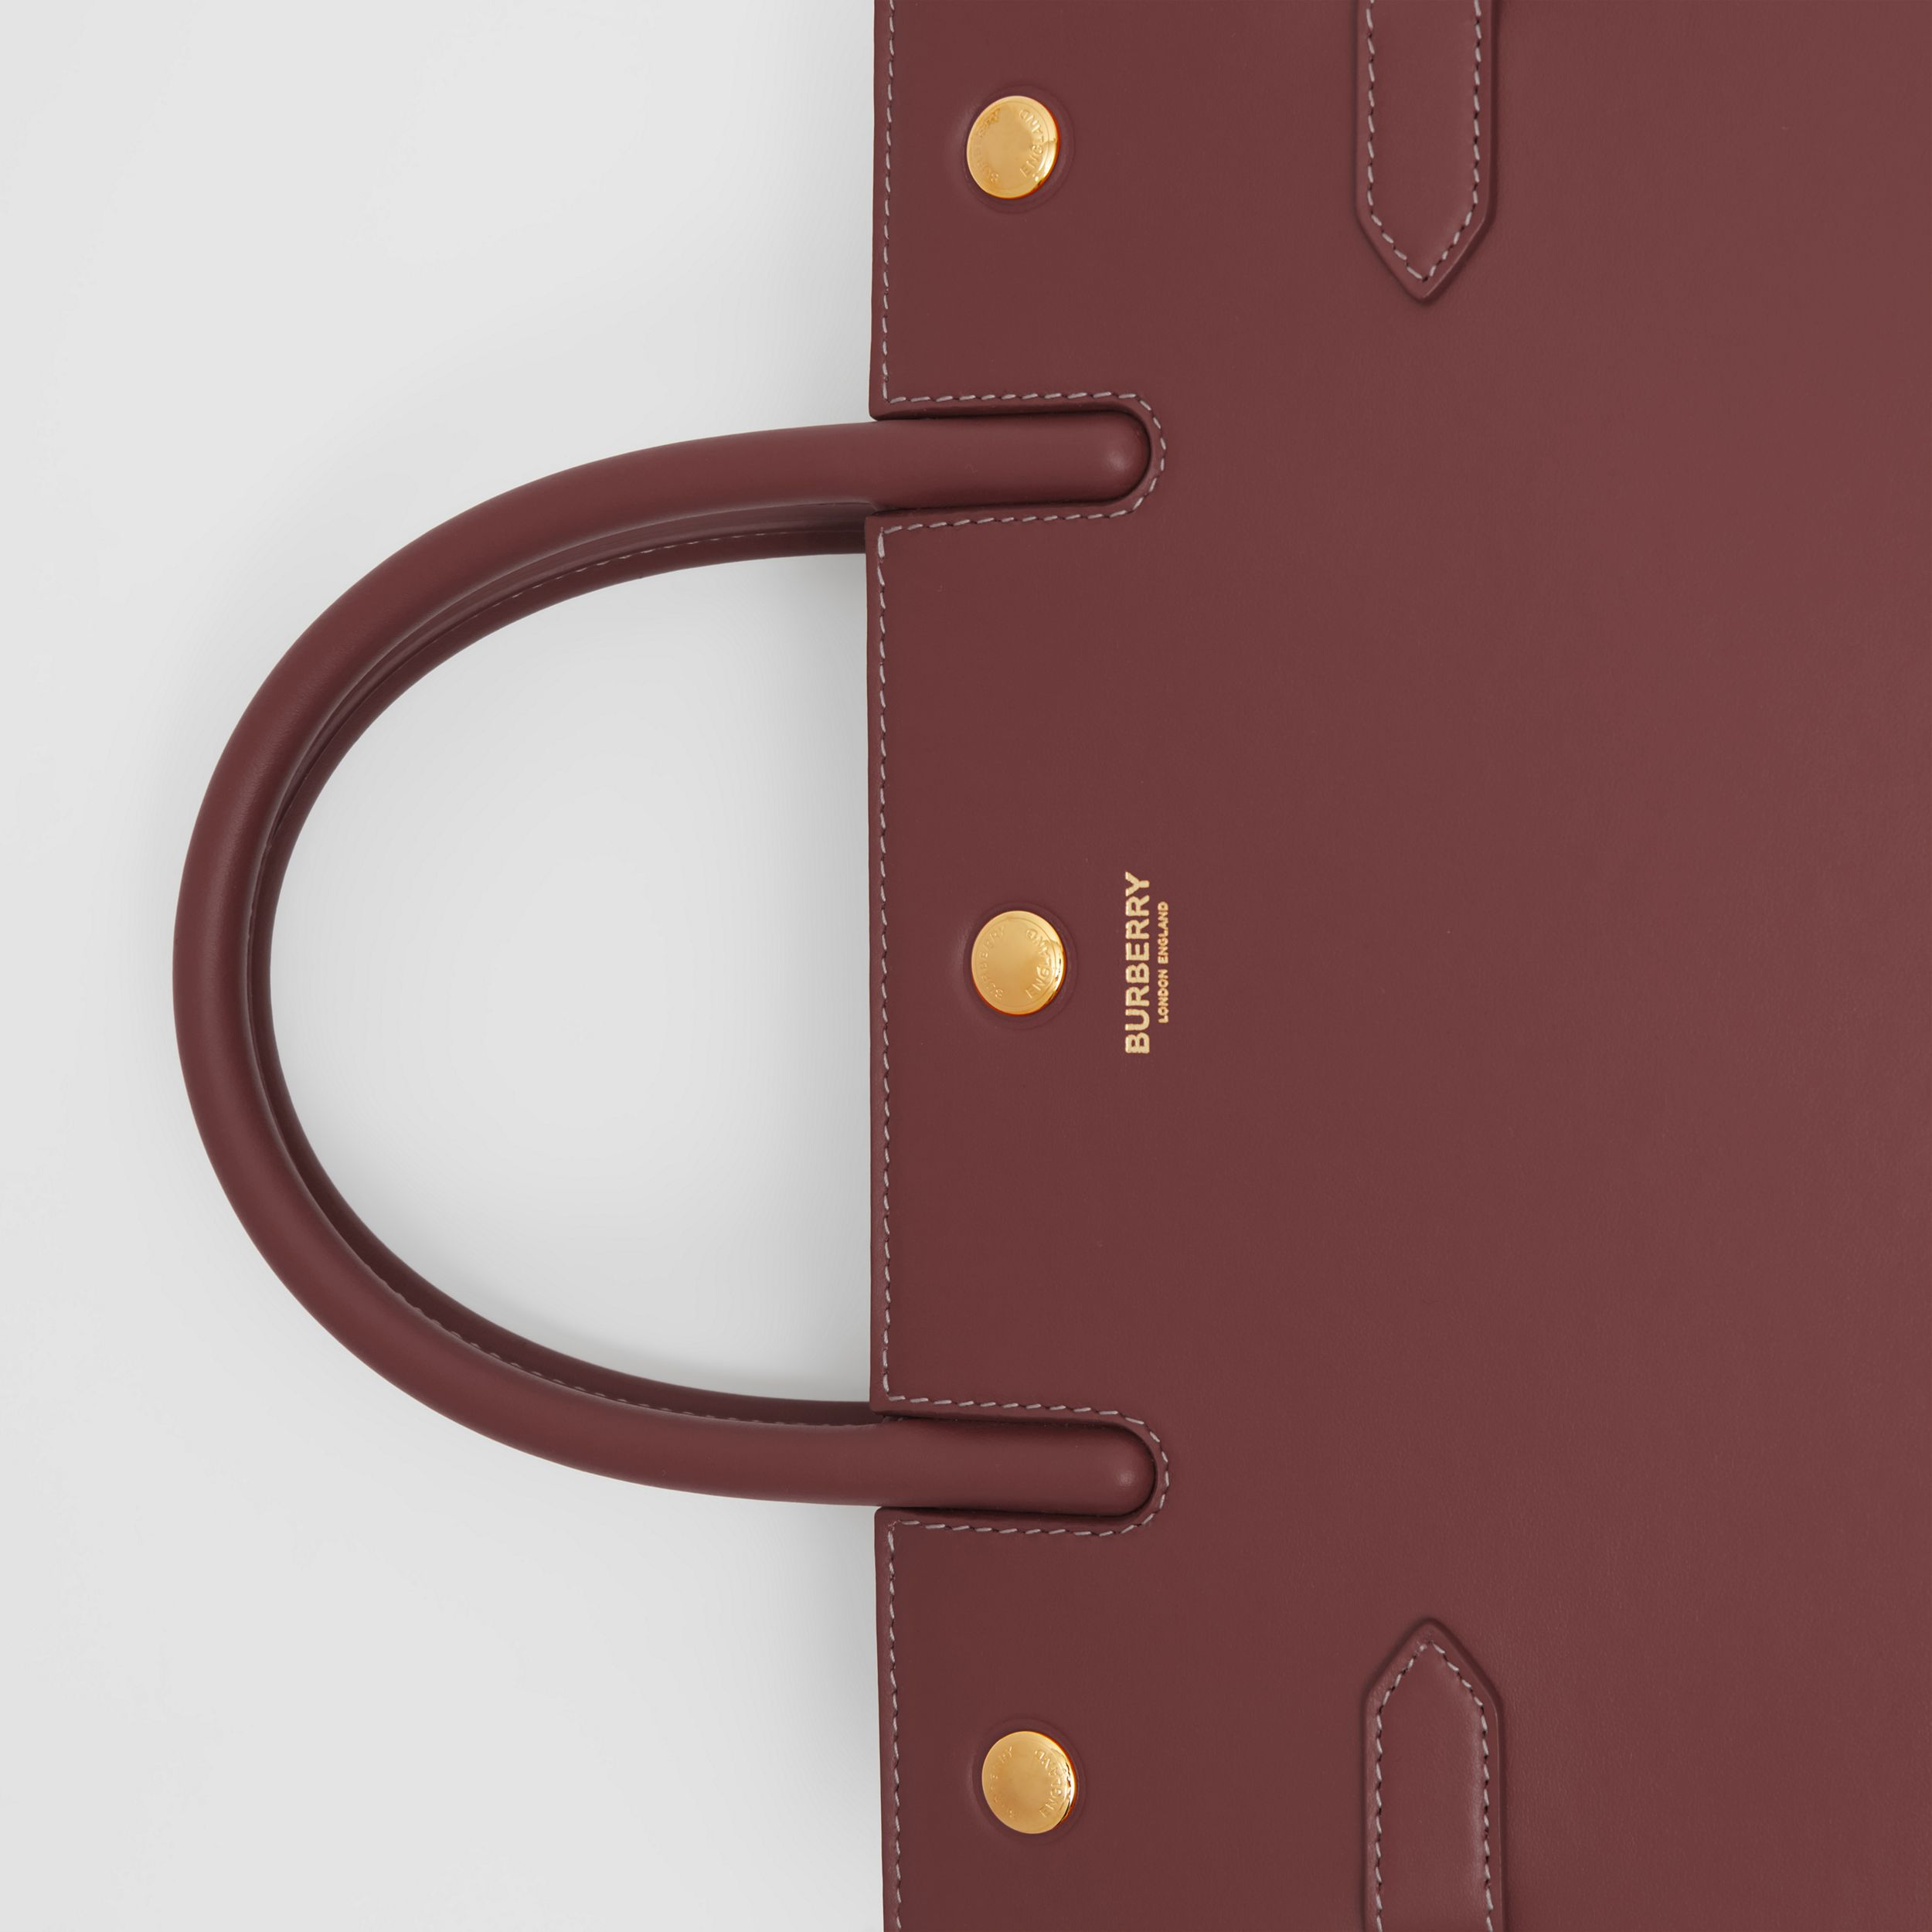 Medium Leather Two-handle Title Bag in Garnet - Women | Burberry Australia - 2